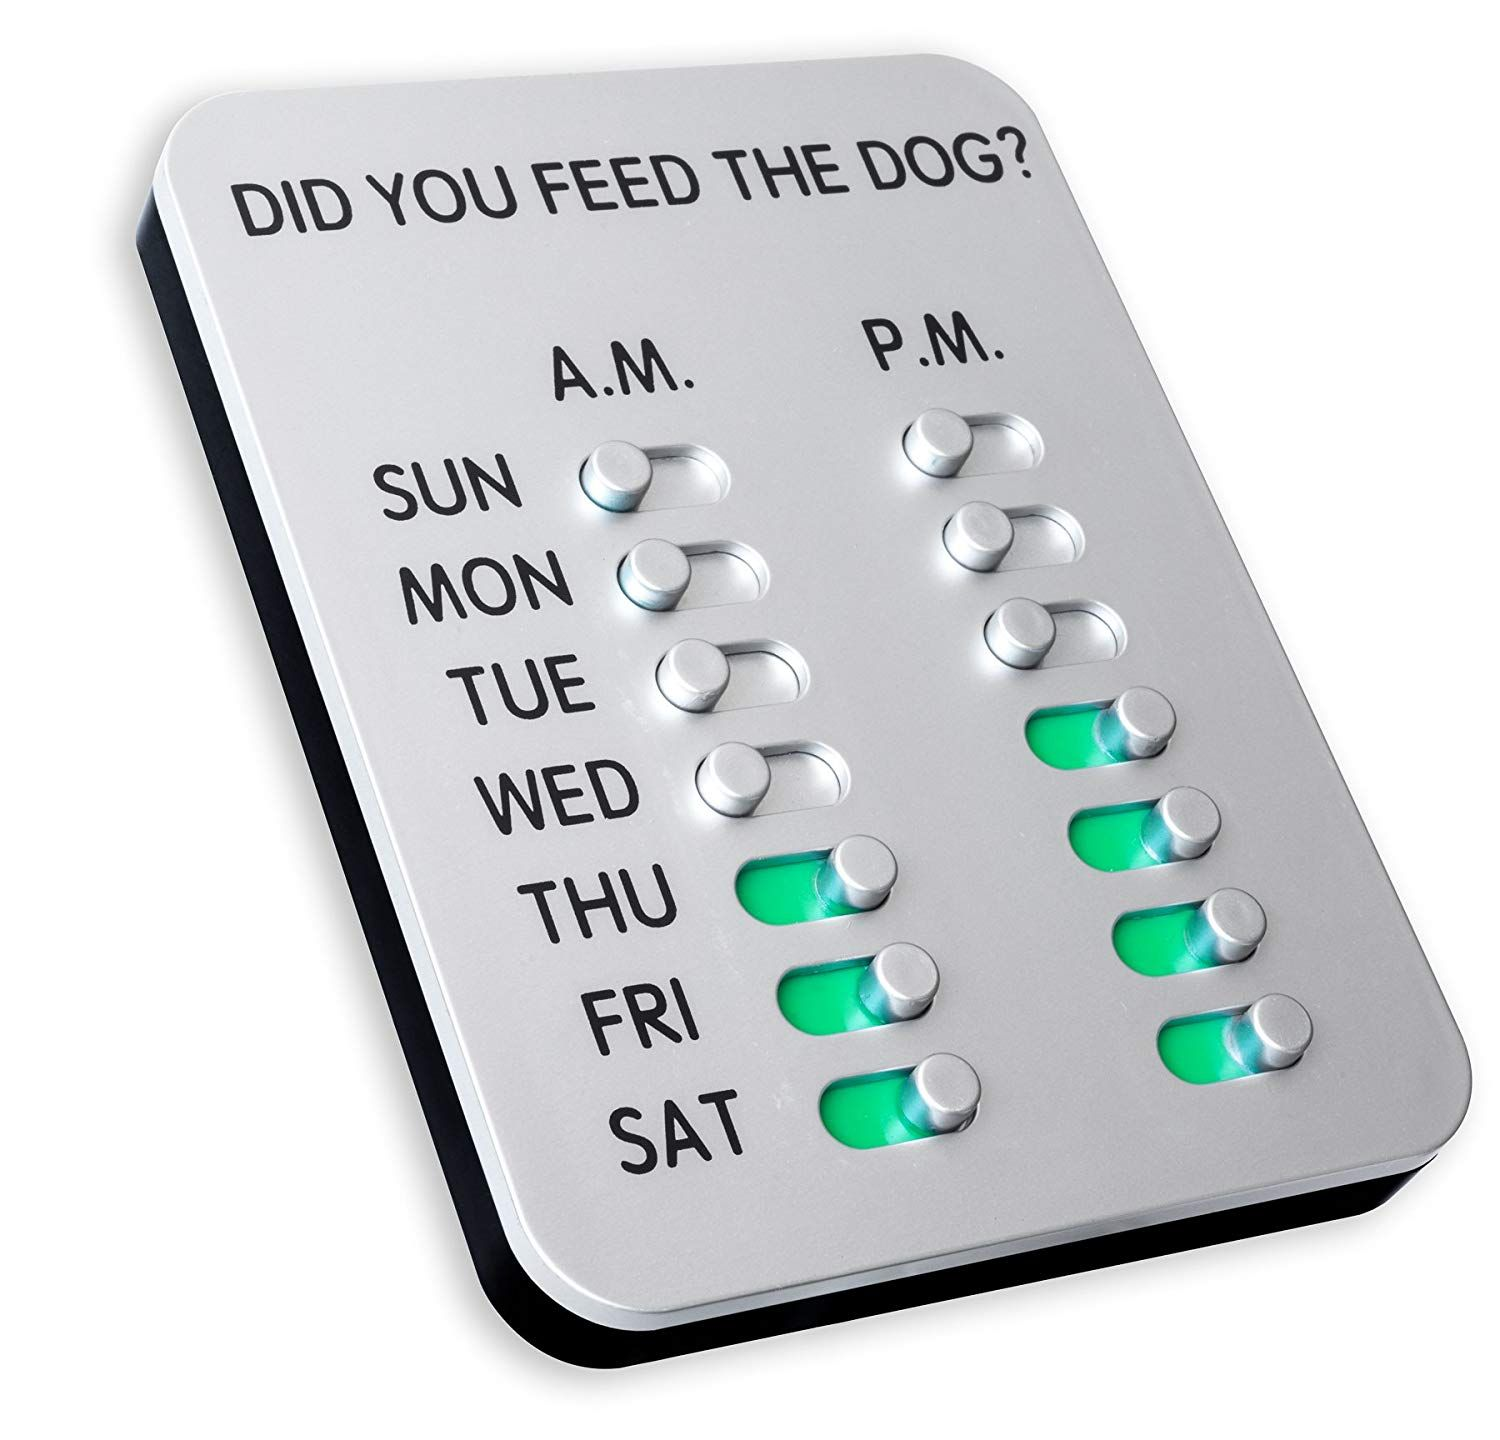 Dog feeder tracker